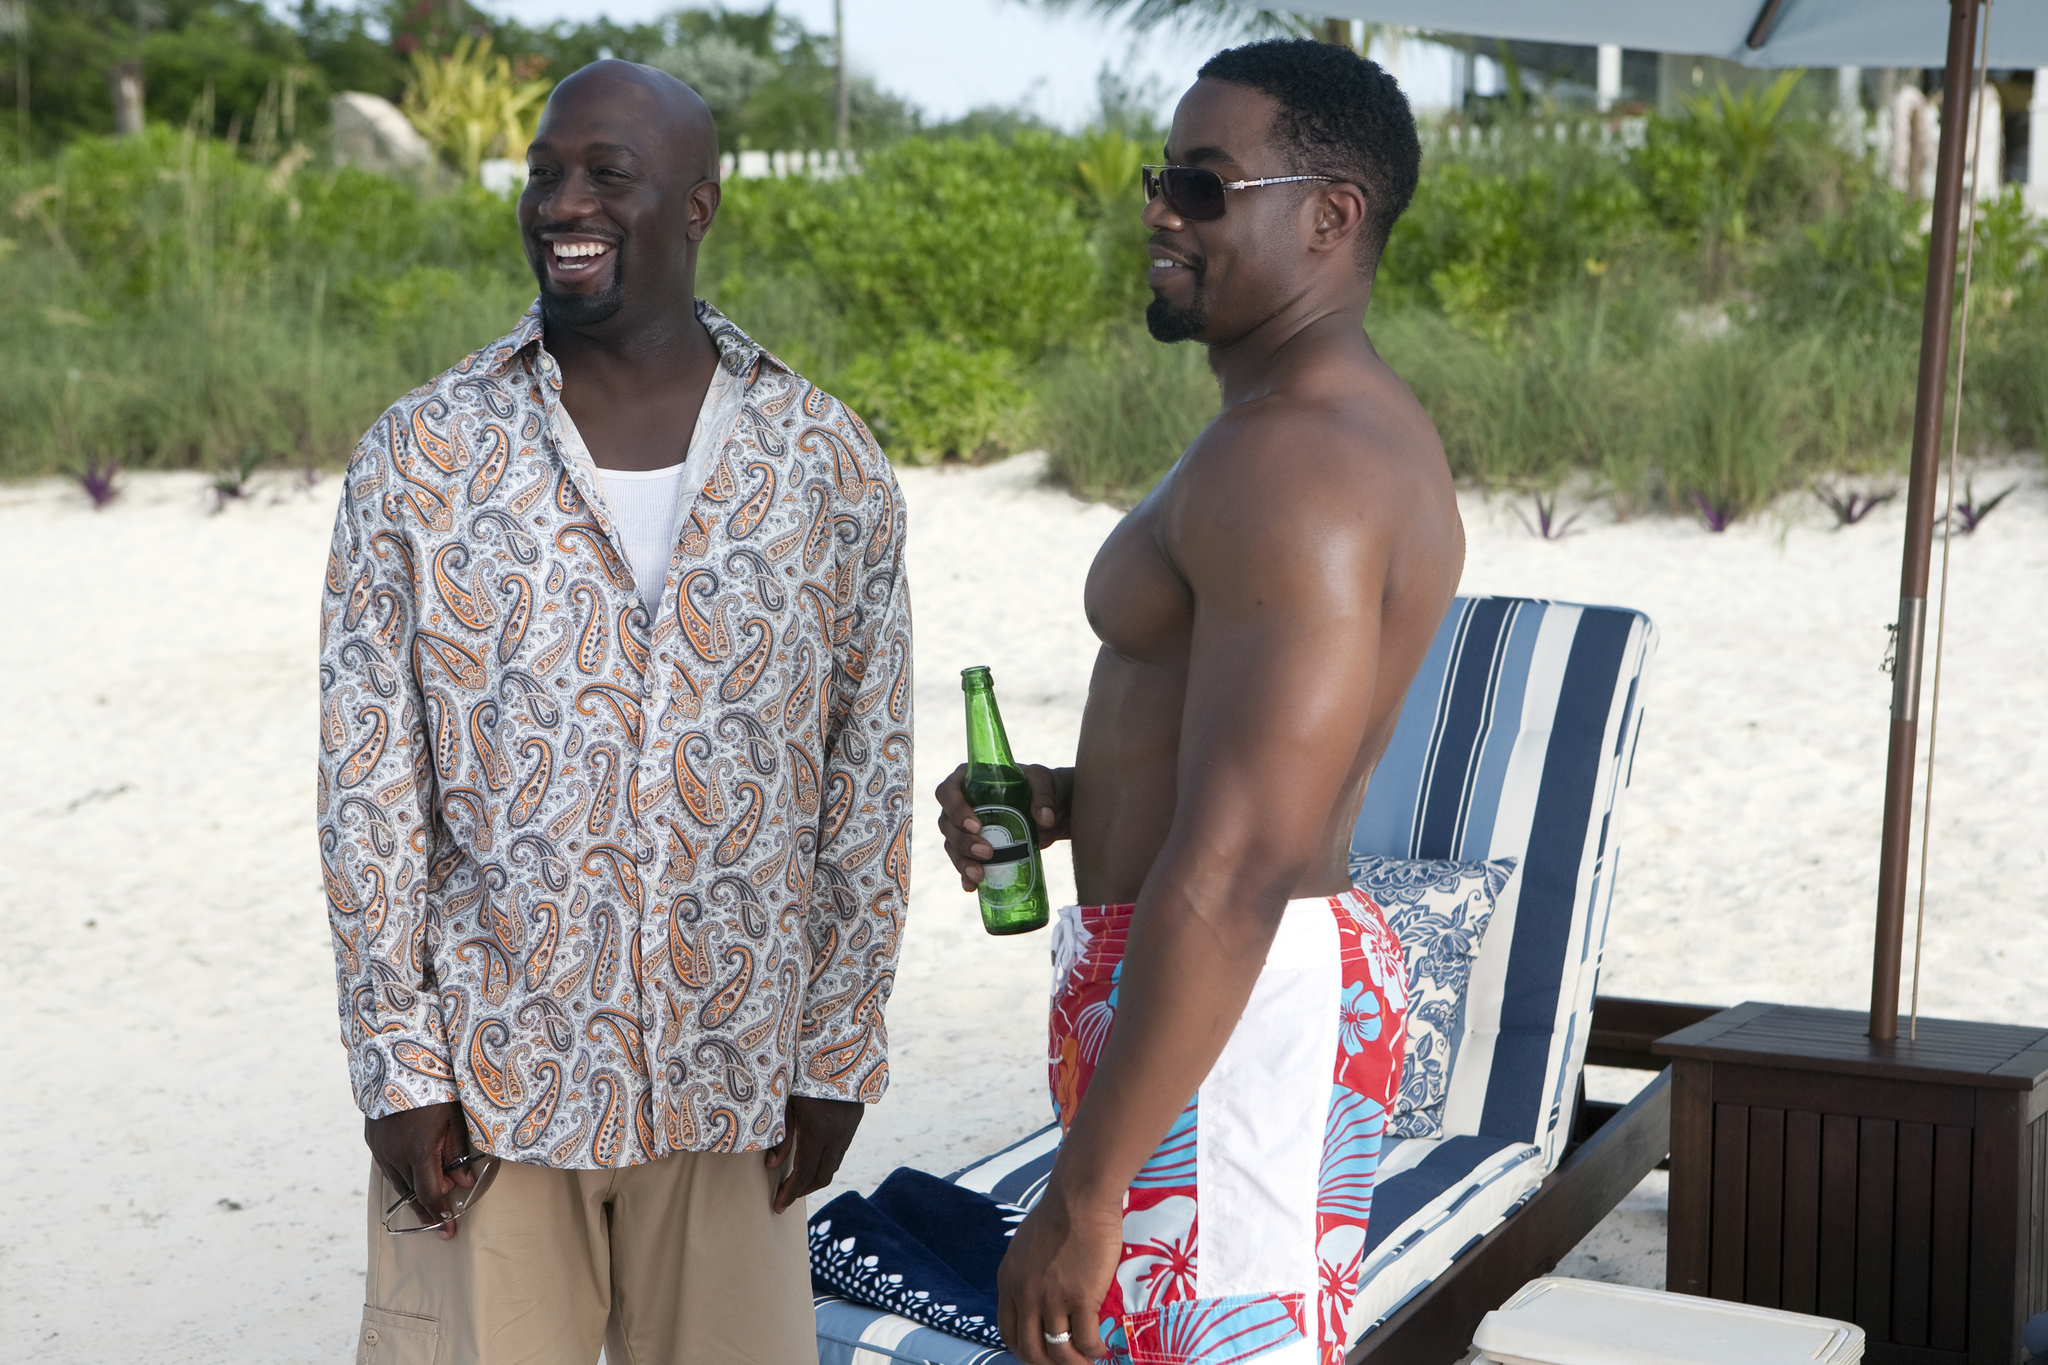 Michael Jai White in Why Did I Get Married Too? (2010)